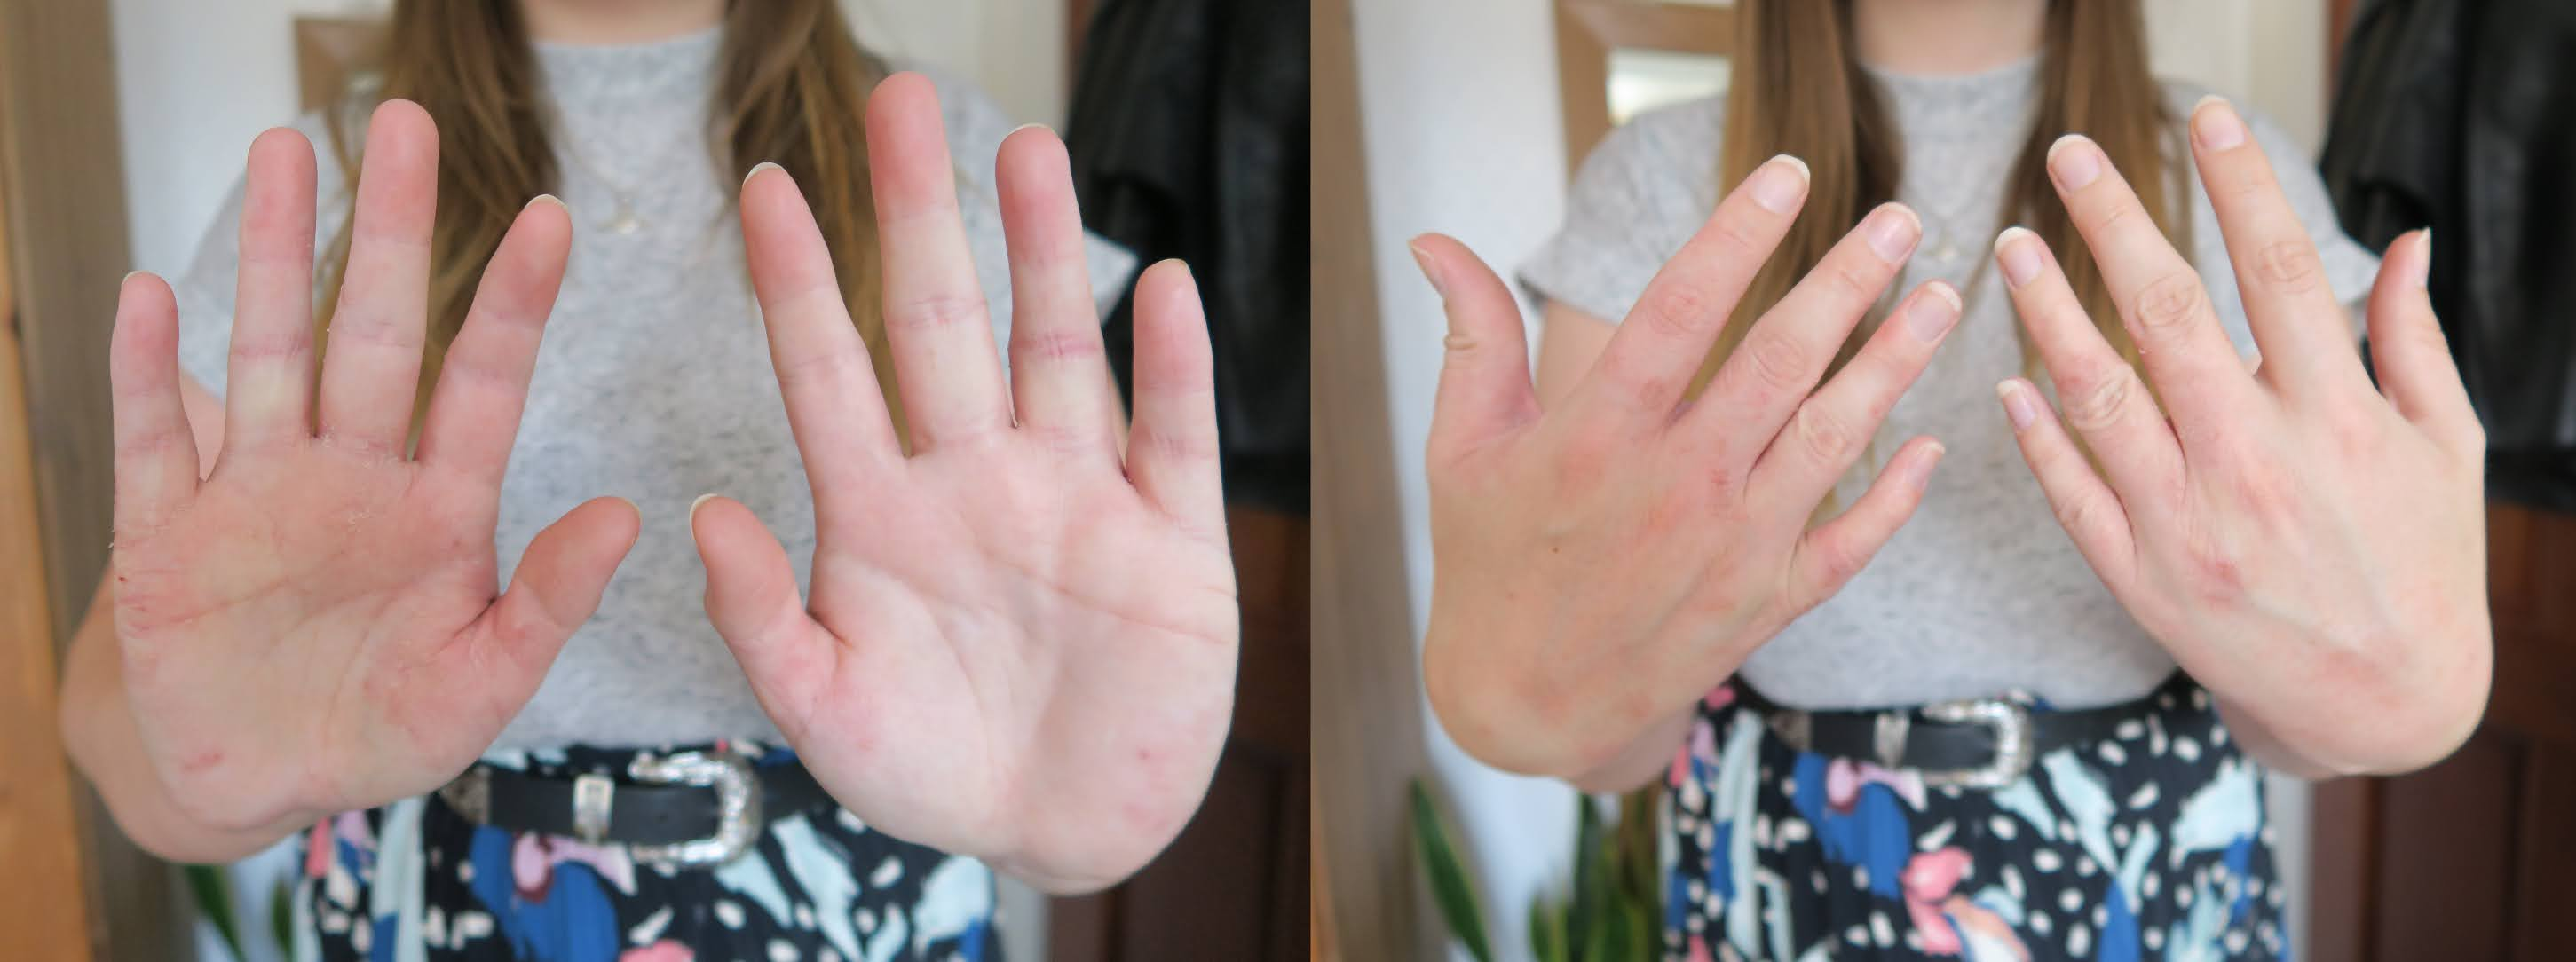 Two photos showing both sides of my hands and the visible patches of eczema